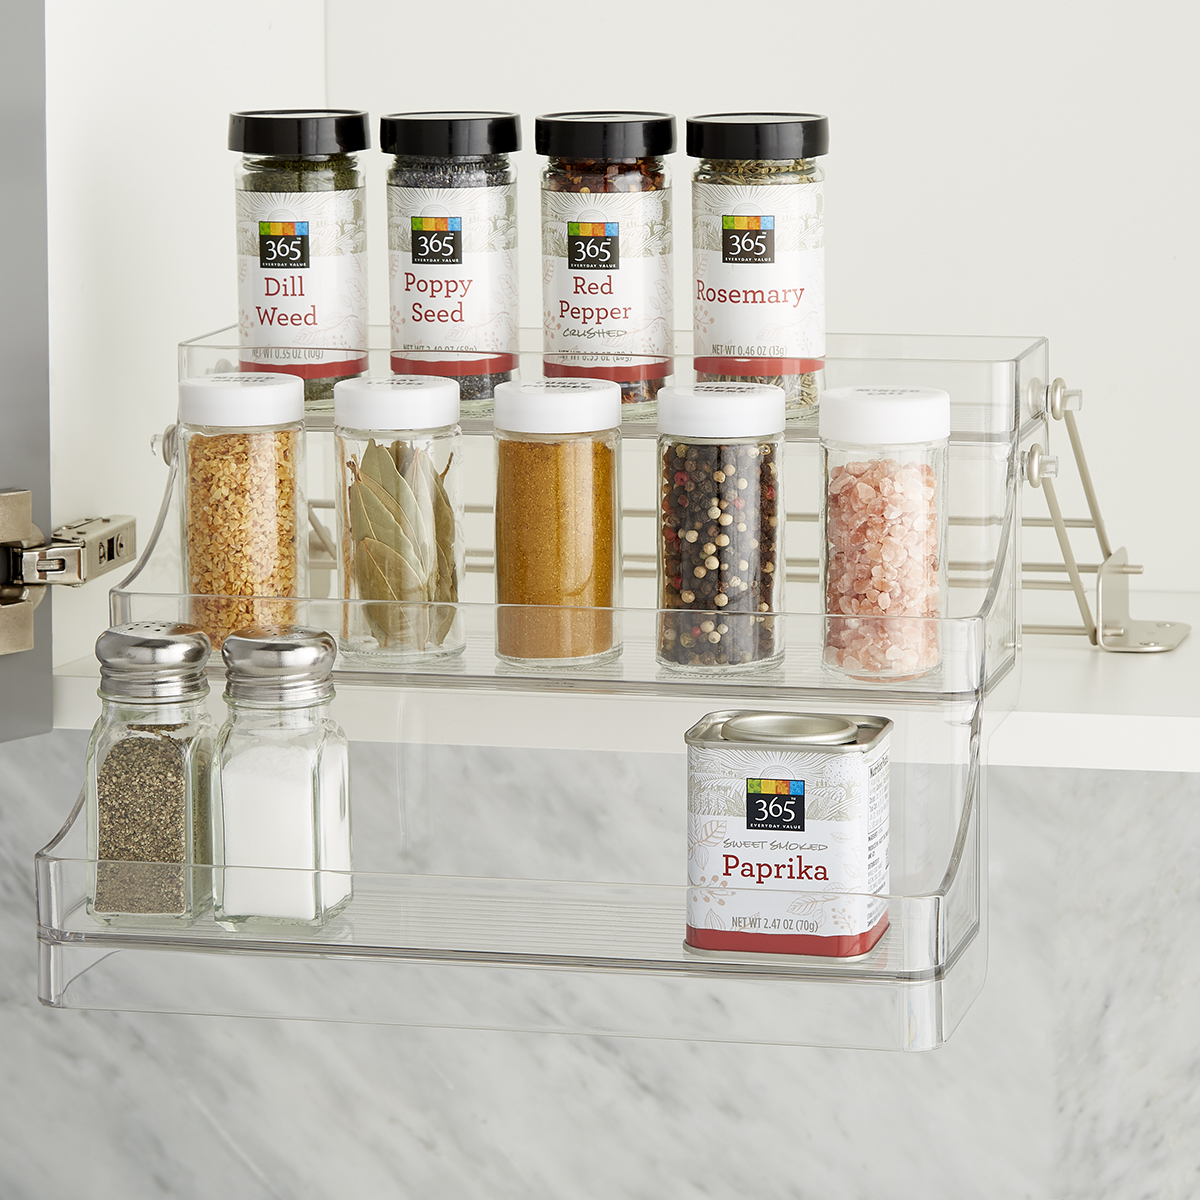 iDesign Linus Easy-Reach Spice Rack